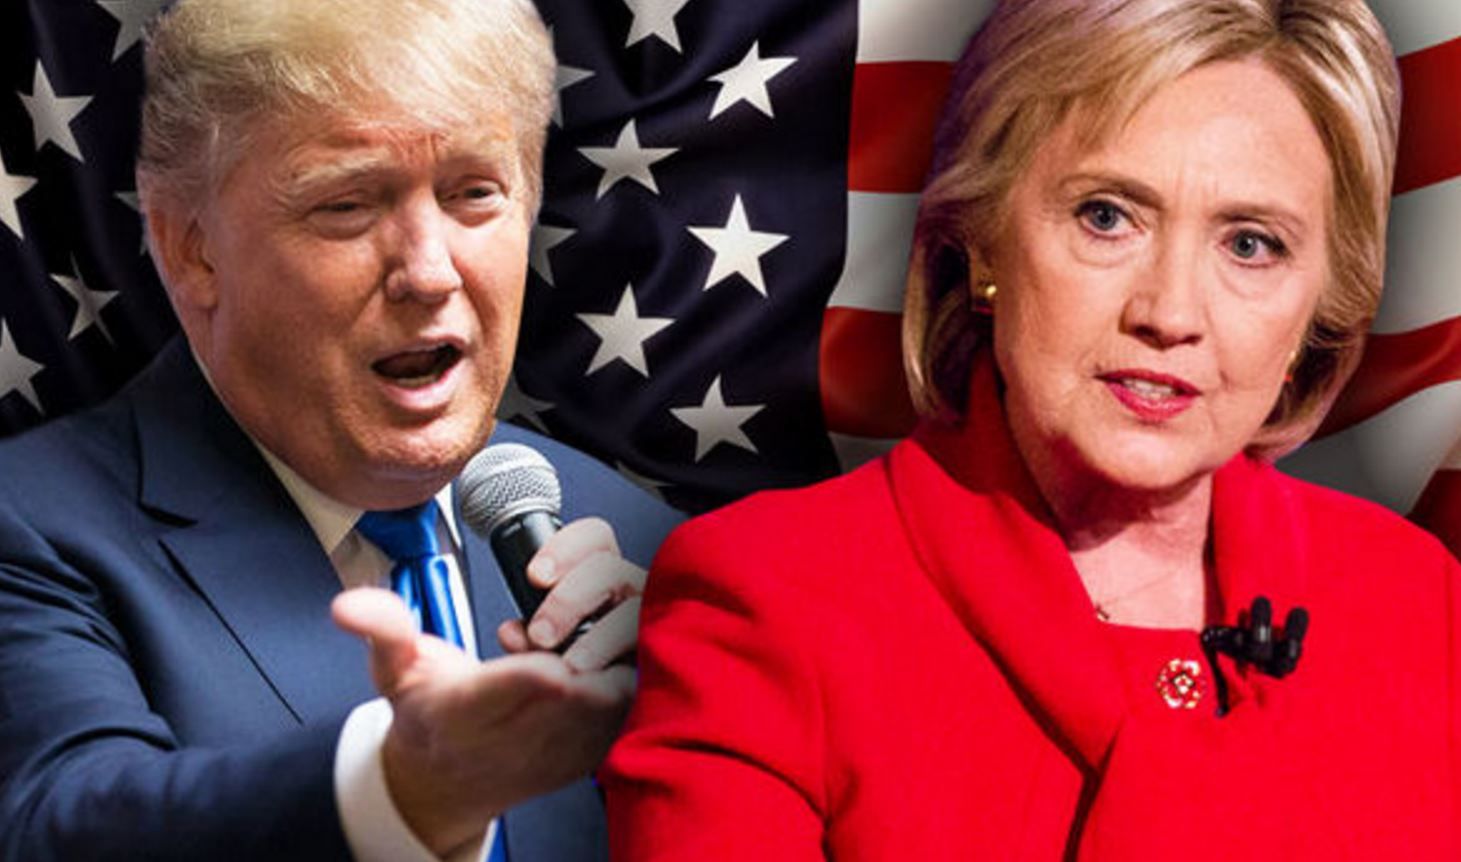 Emotional factors played a big part in the outcome of the US presidential election.